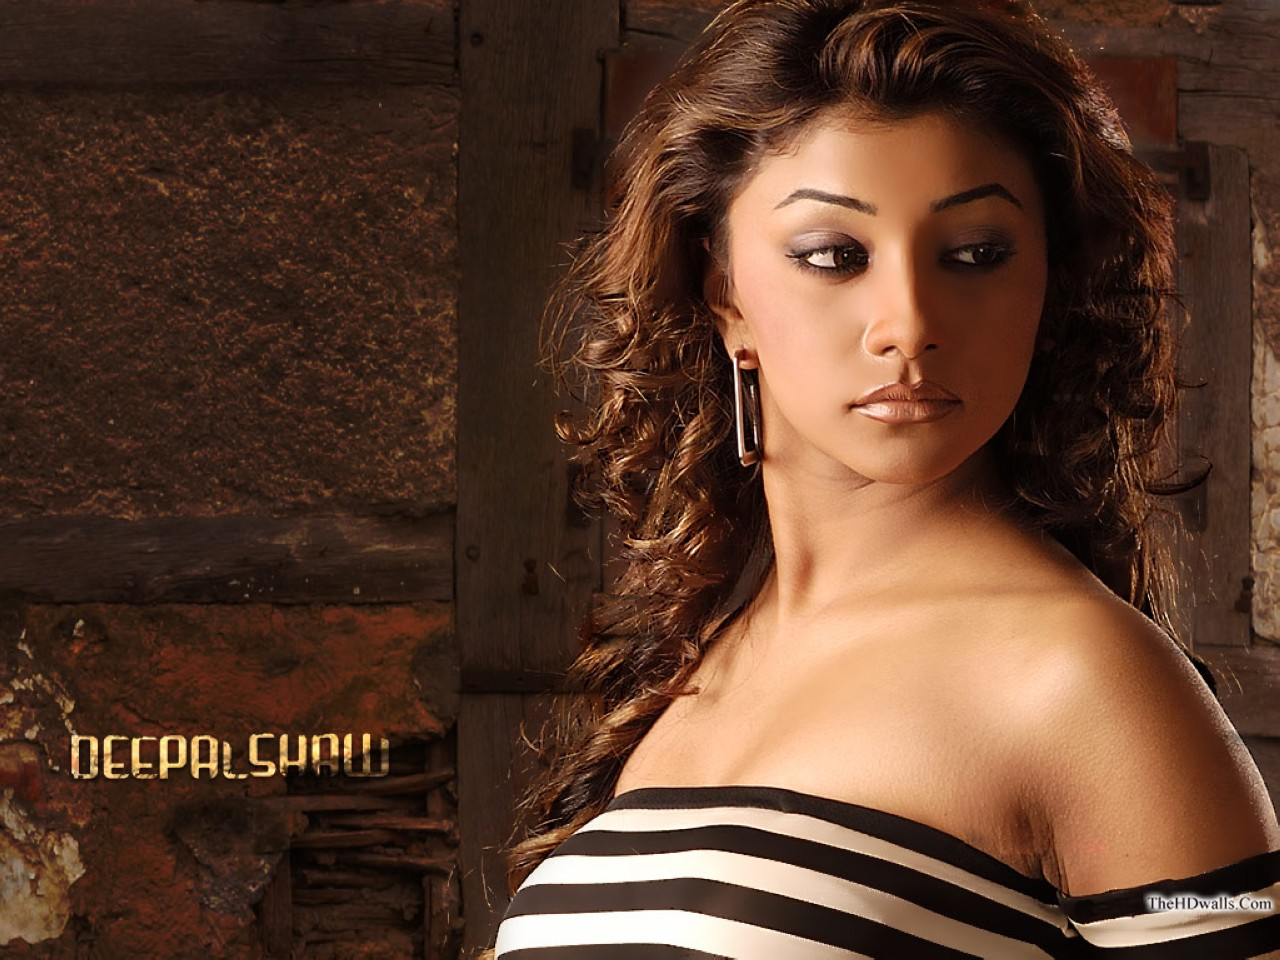 Bollywood Deepal Shaw wallpapers Abjmuzsu